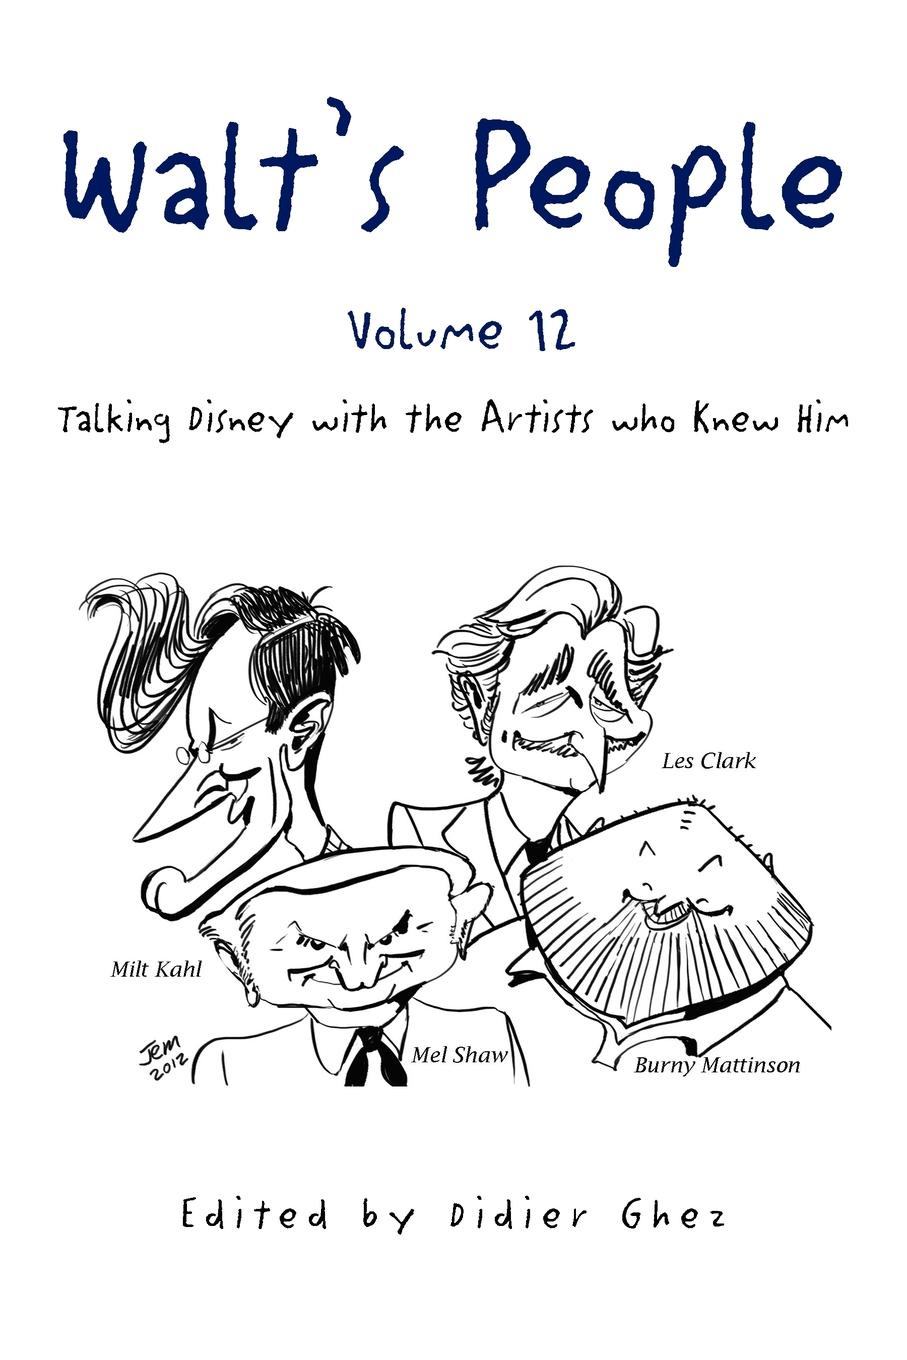 Edited by Didier Ghez Walts People - Volume 12. Talking Disney with the Artists who Knew Him